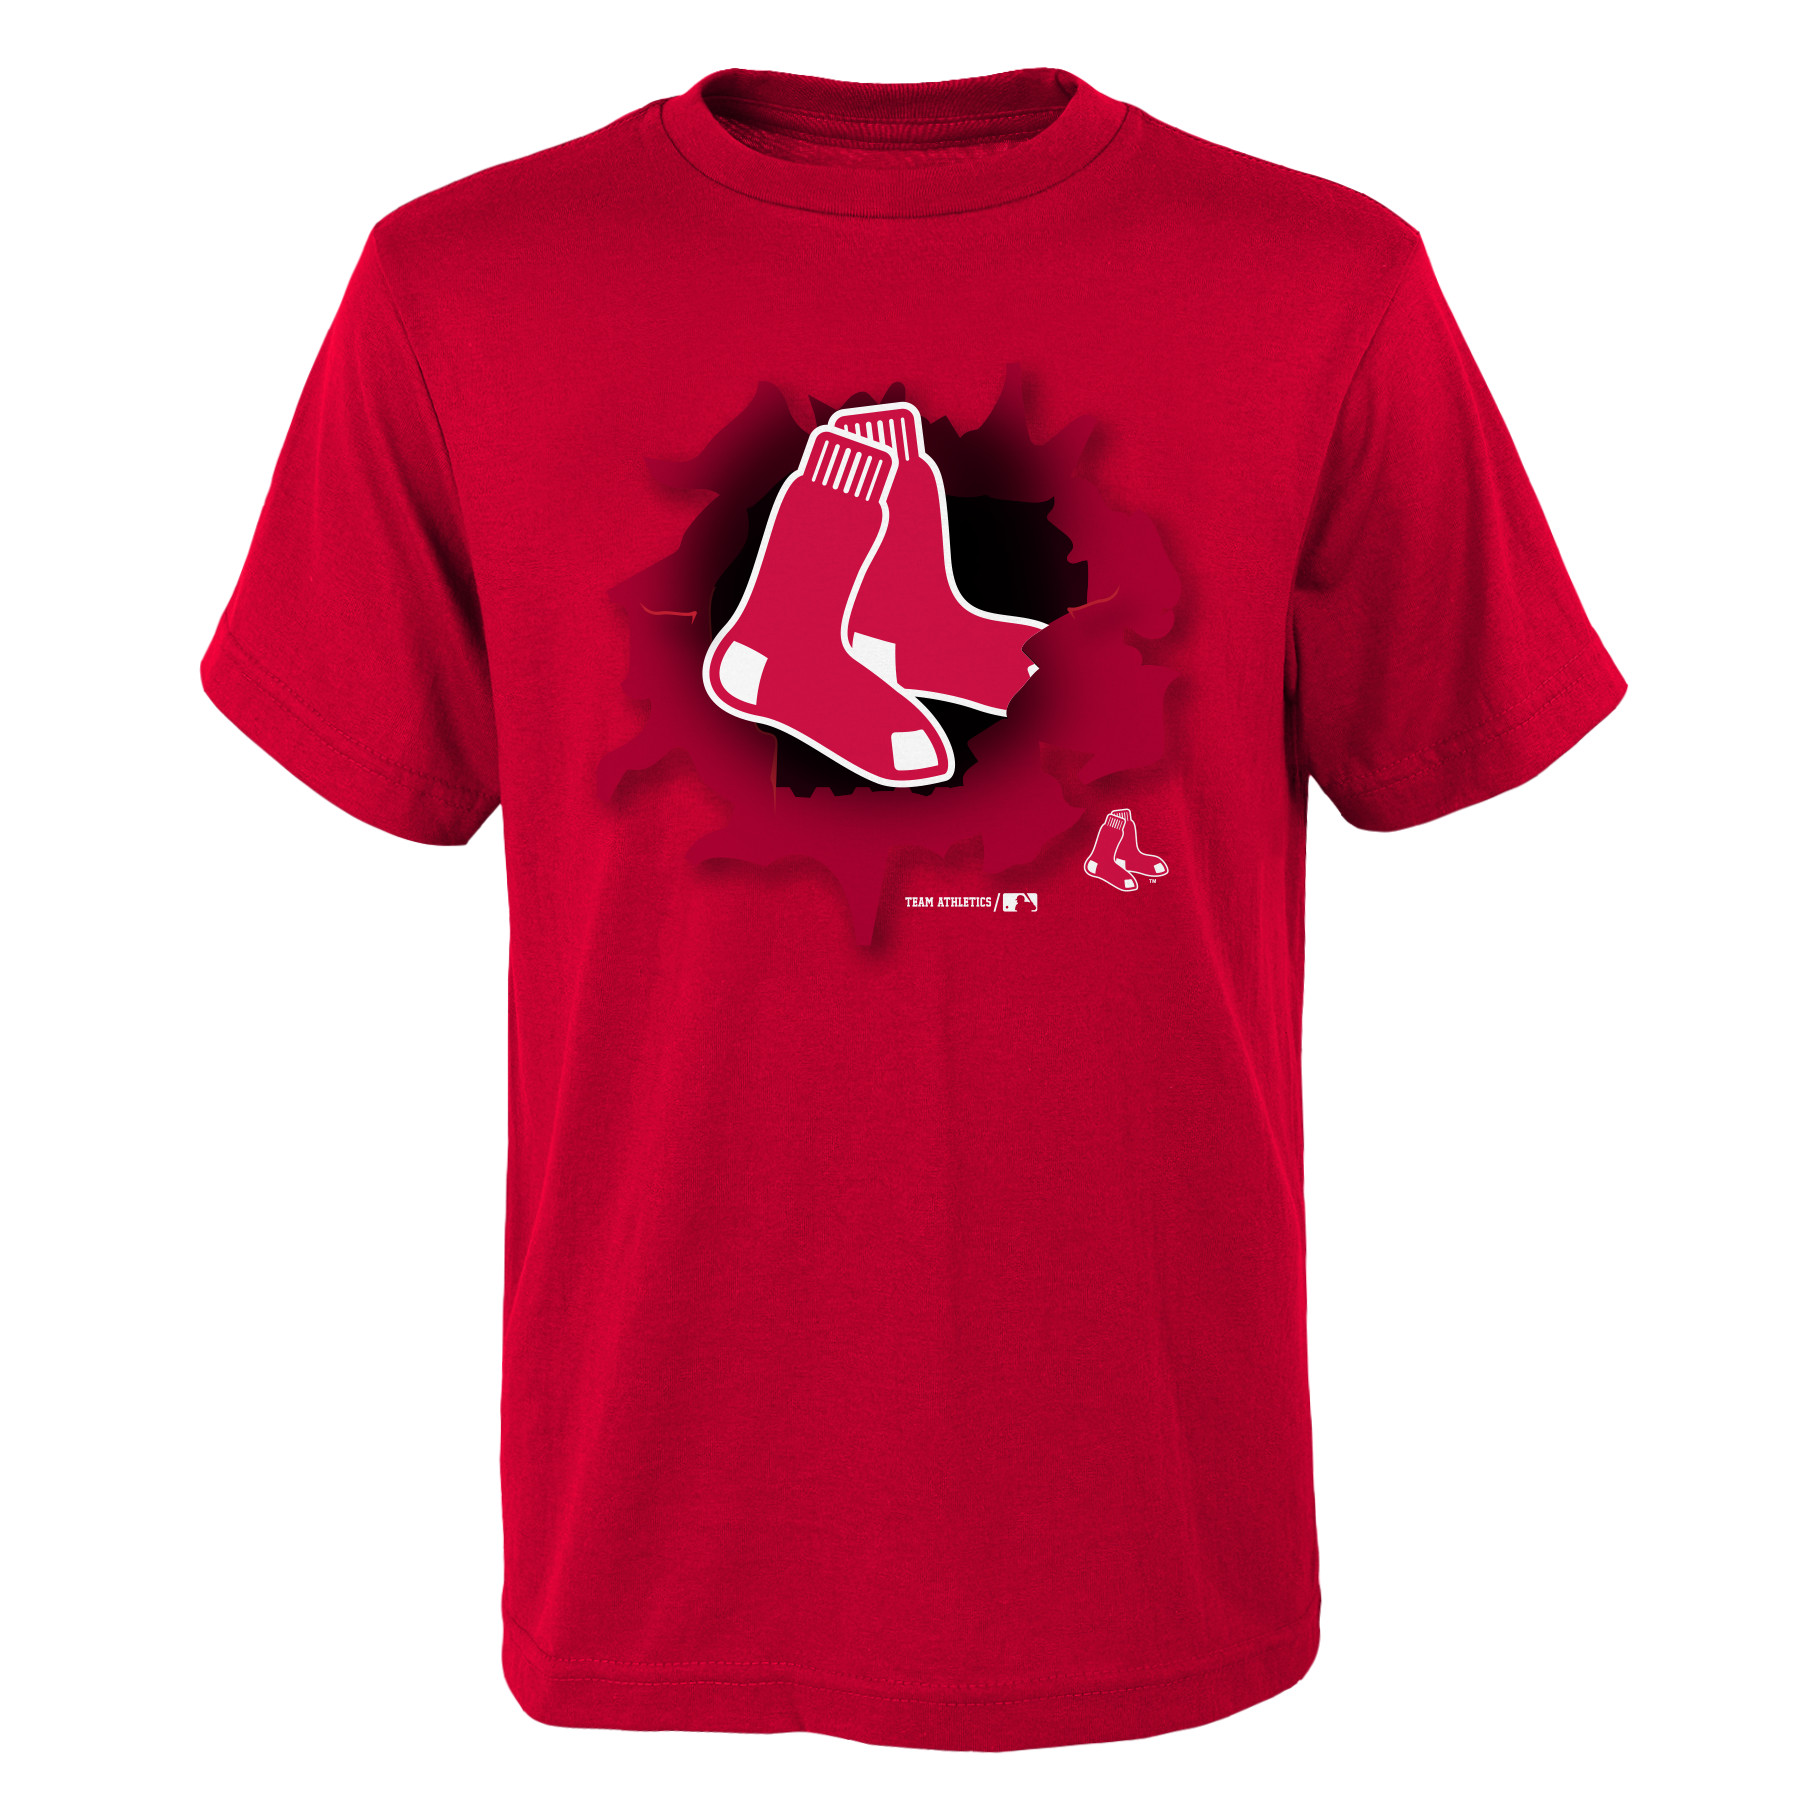 MLB Boston RED SOX TEE Short Sleeve Boys OPP 100% Cotton Alternate Team Colors 4-18